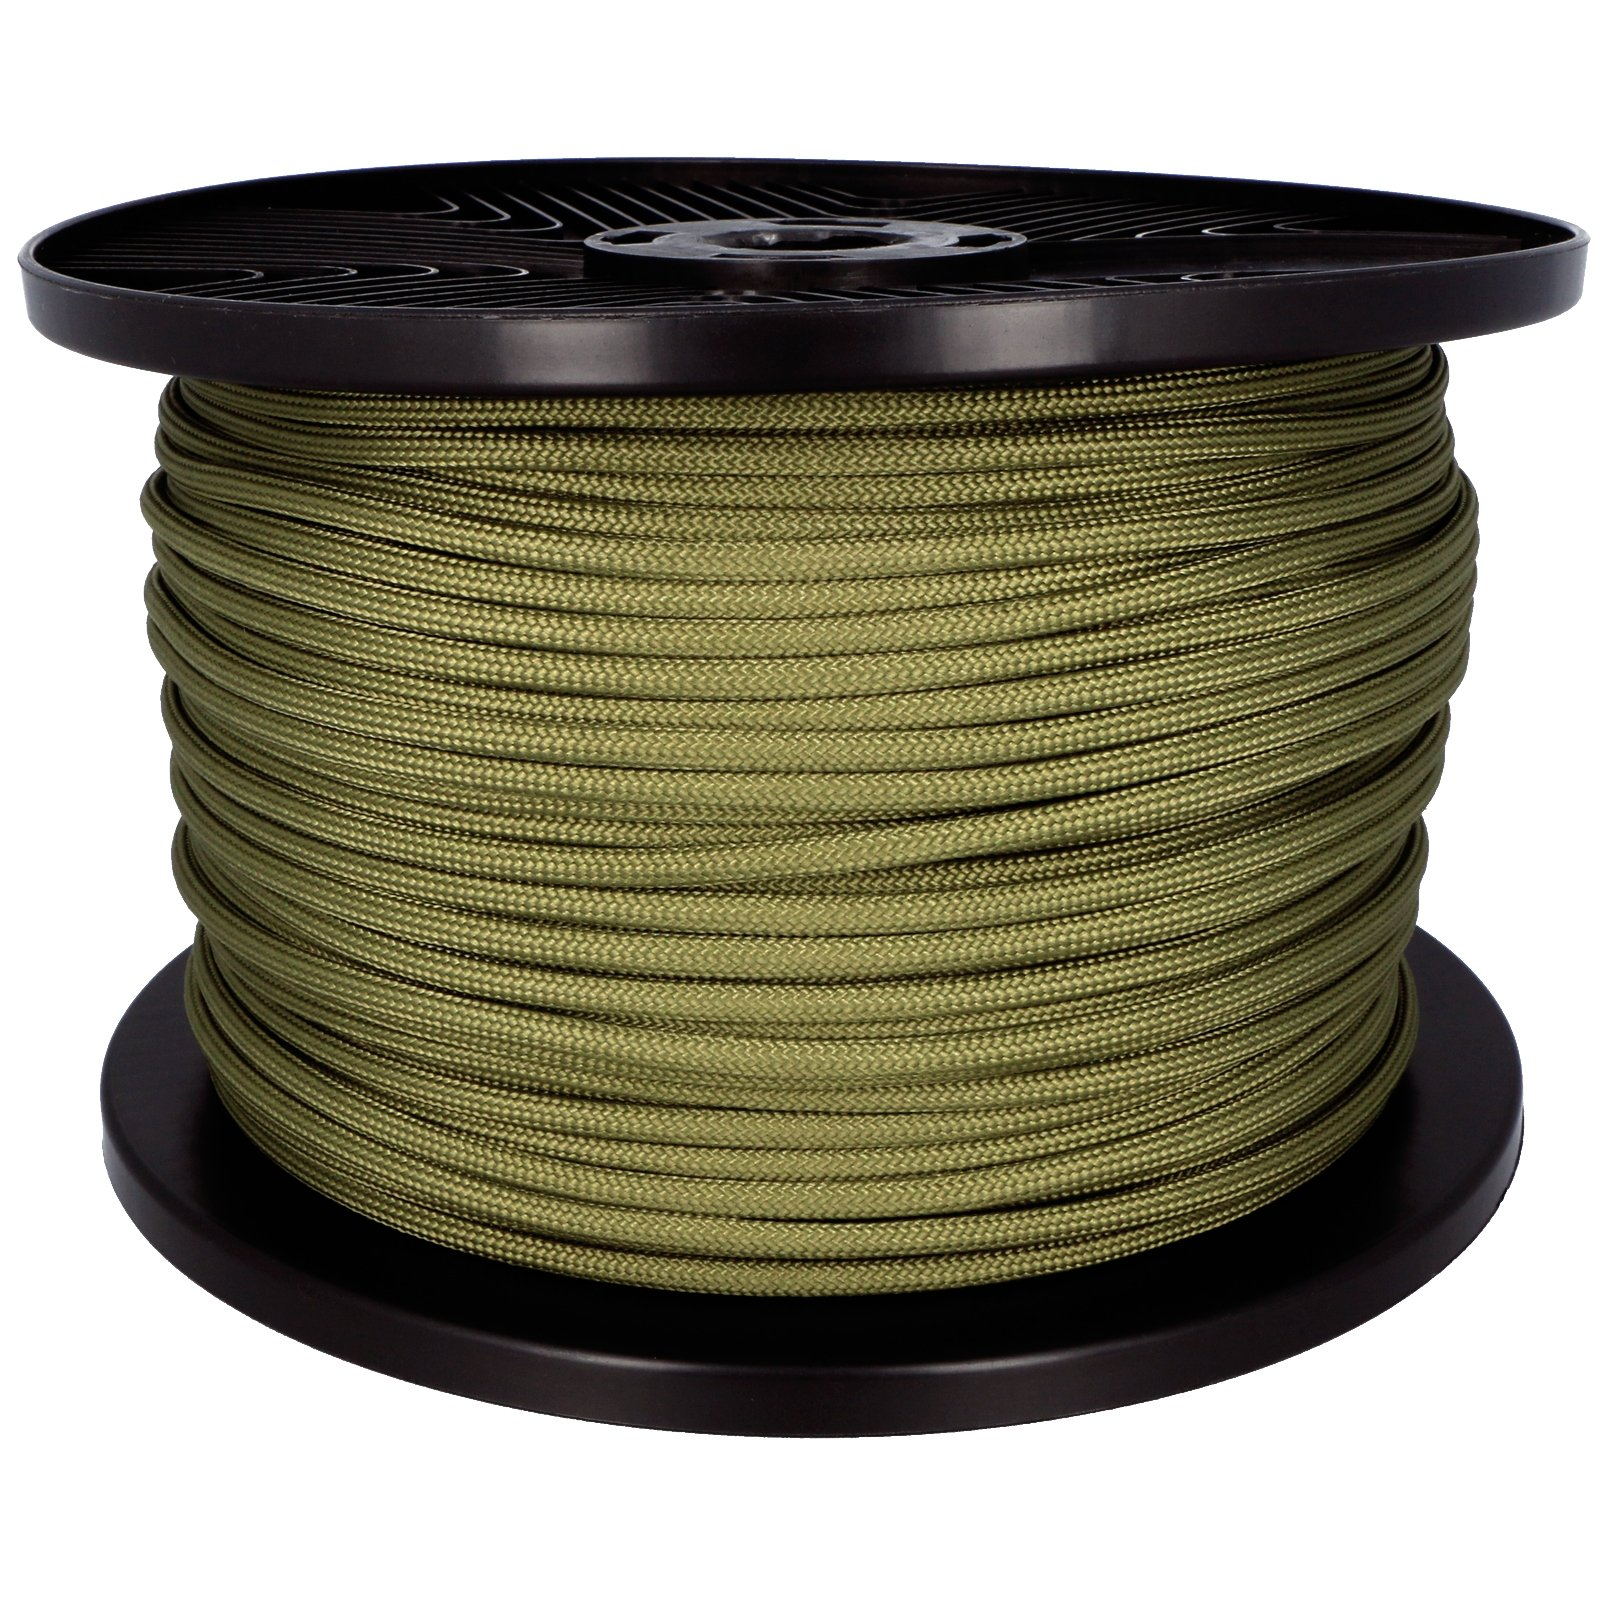 550lbs Strength Survival Paracord Rope Camping Hiking OD Green - 500ft